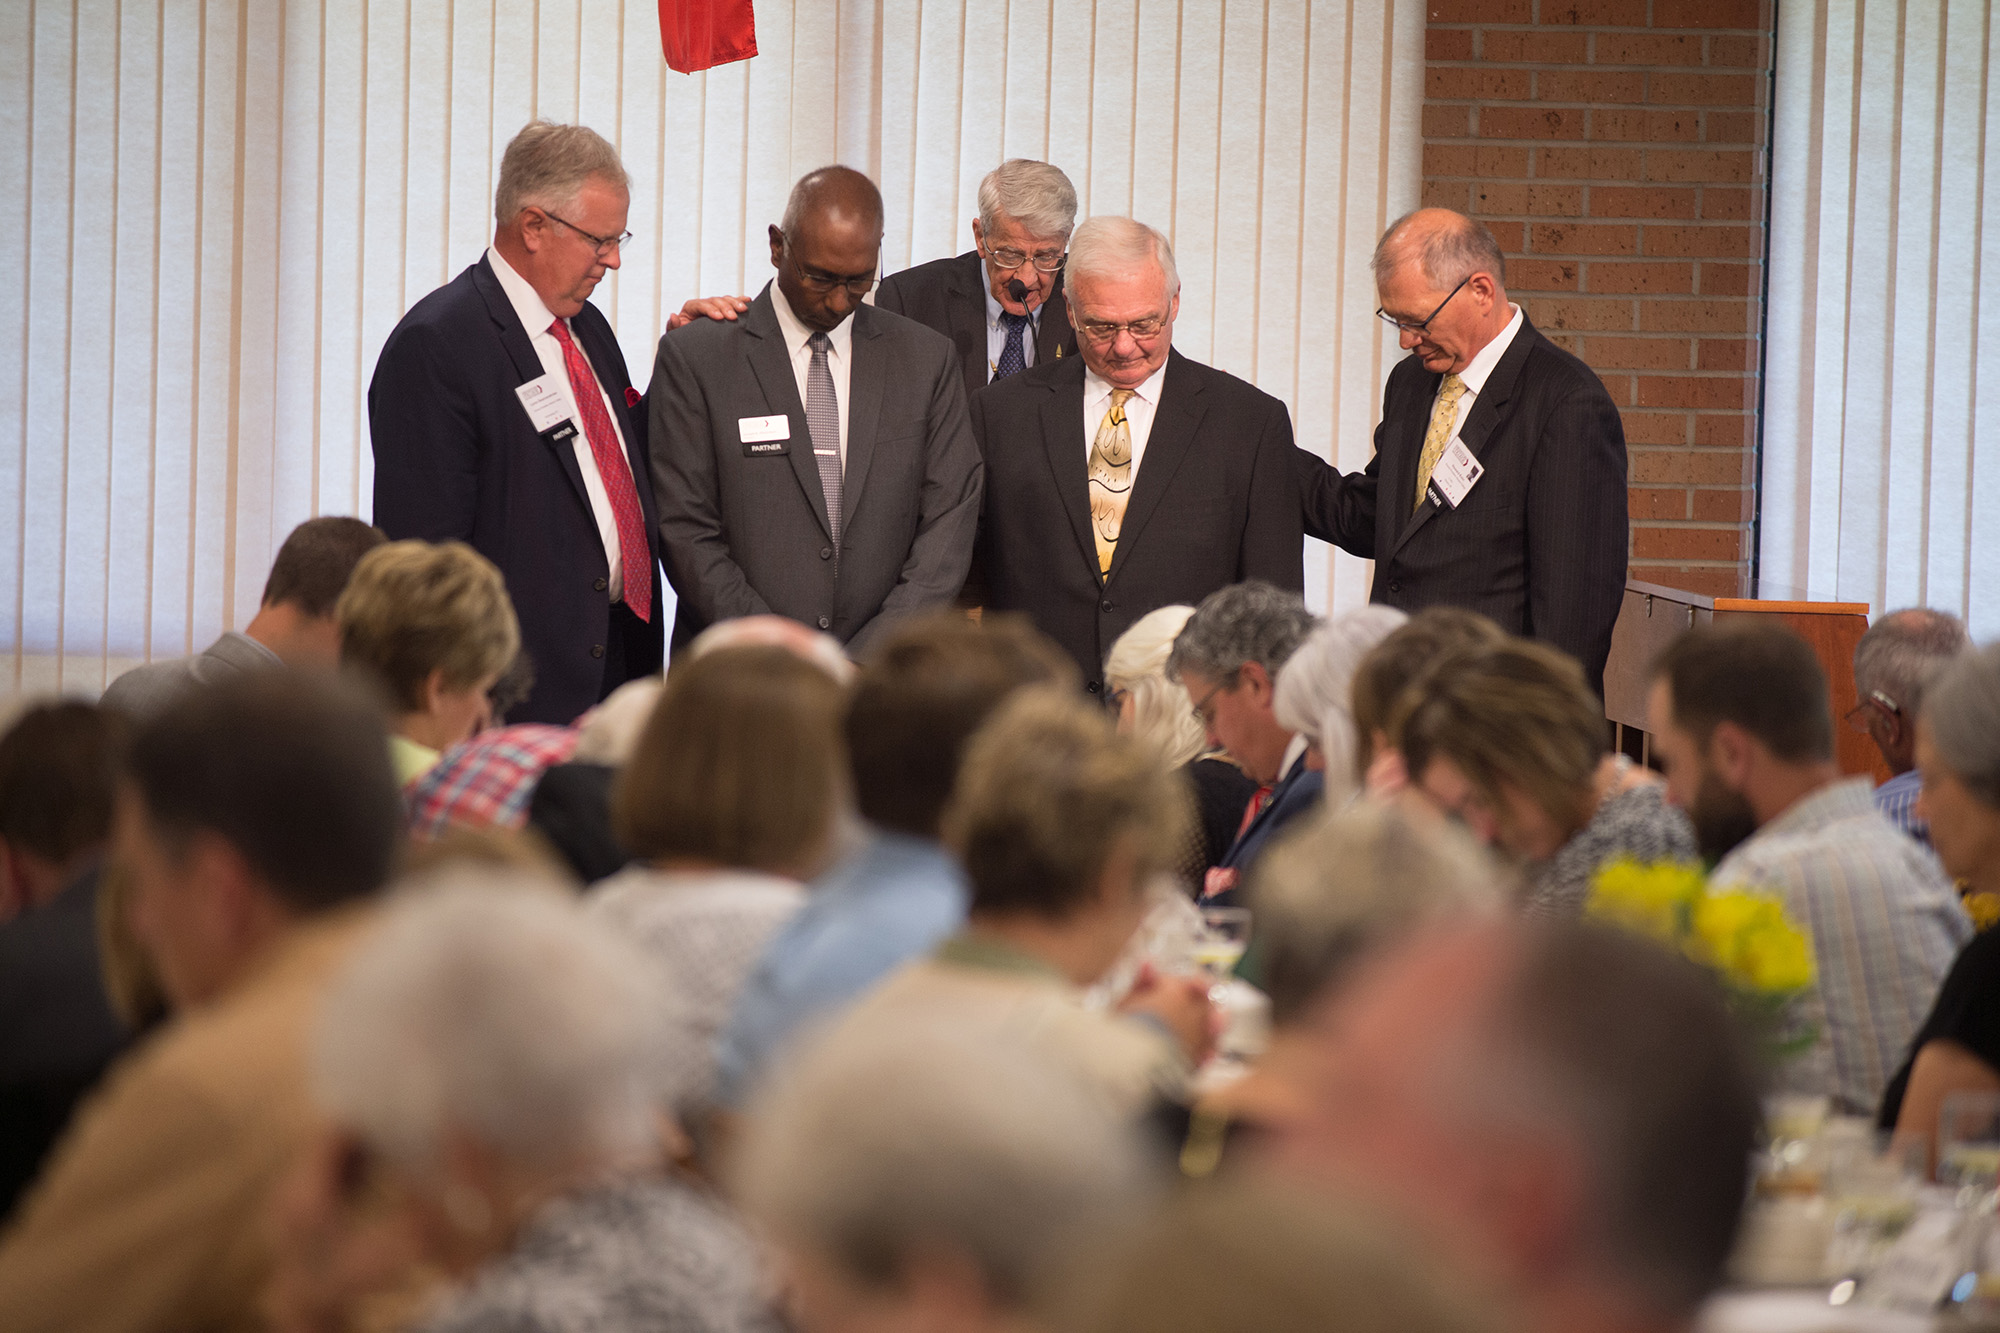 Hesston's four living former presidents pray a prayer of blessing for the college's ninth president. Dr. Joseph Manickam.